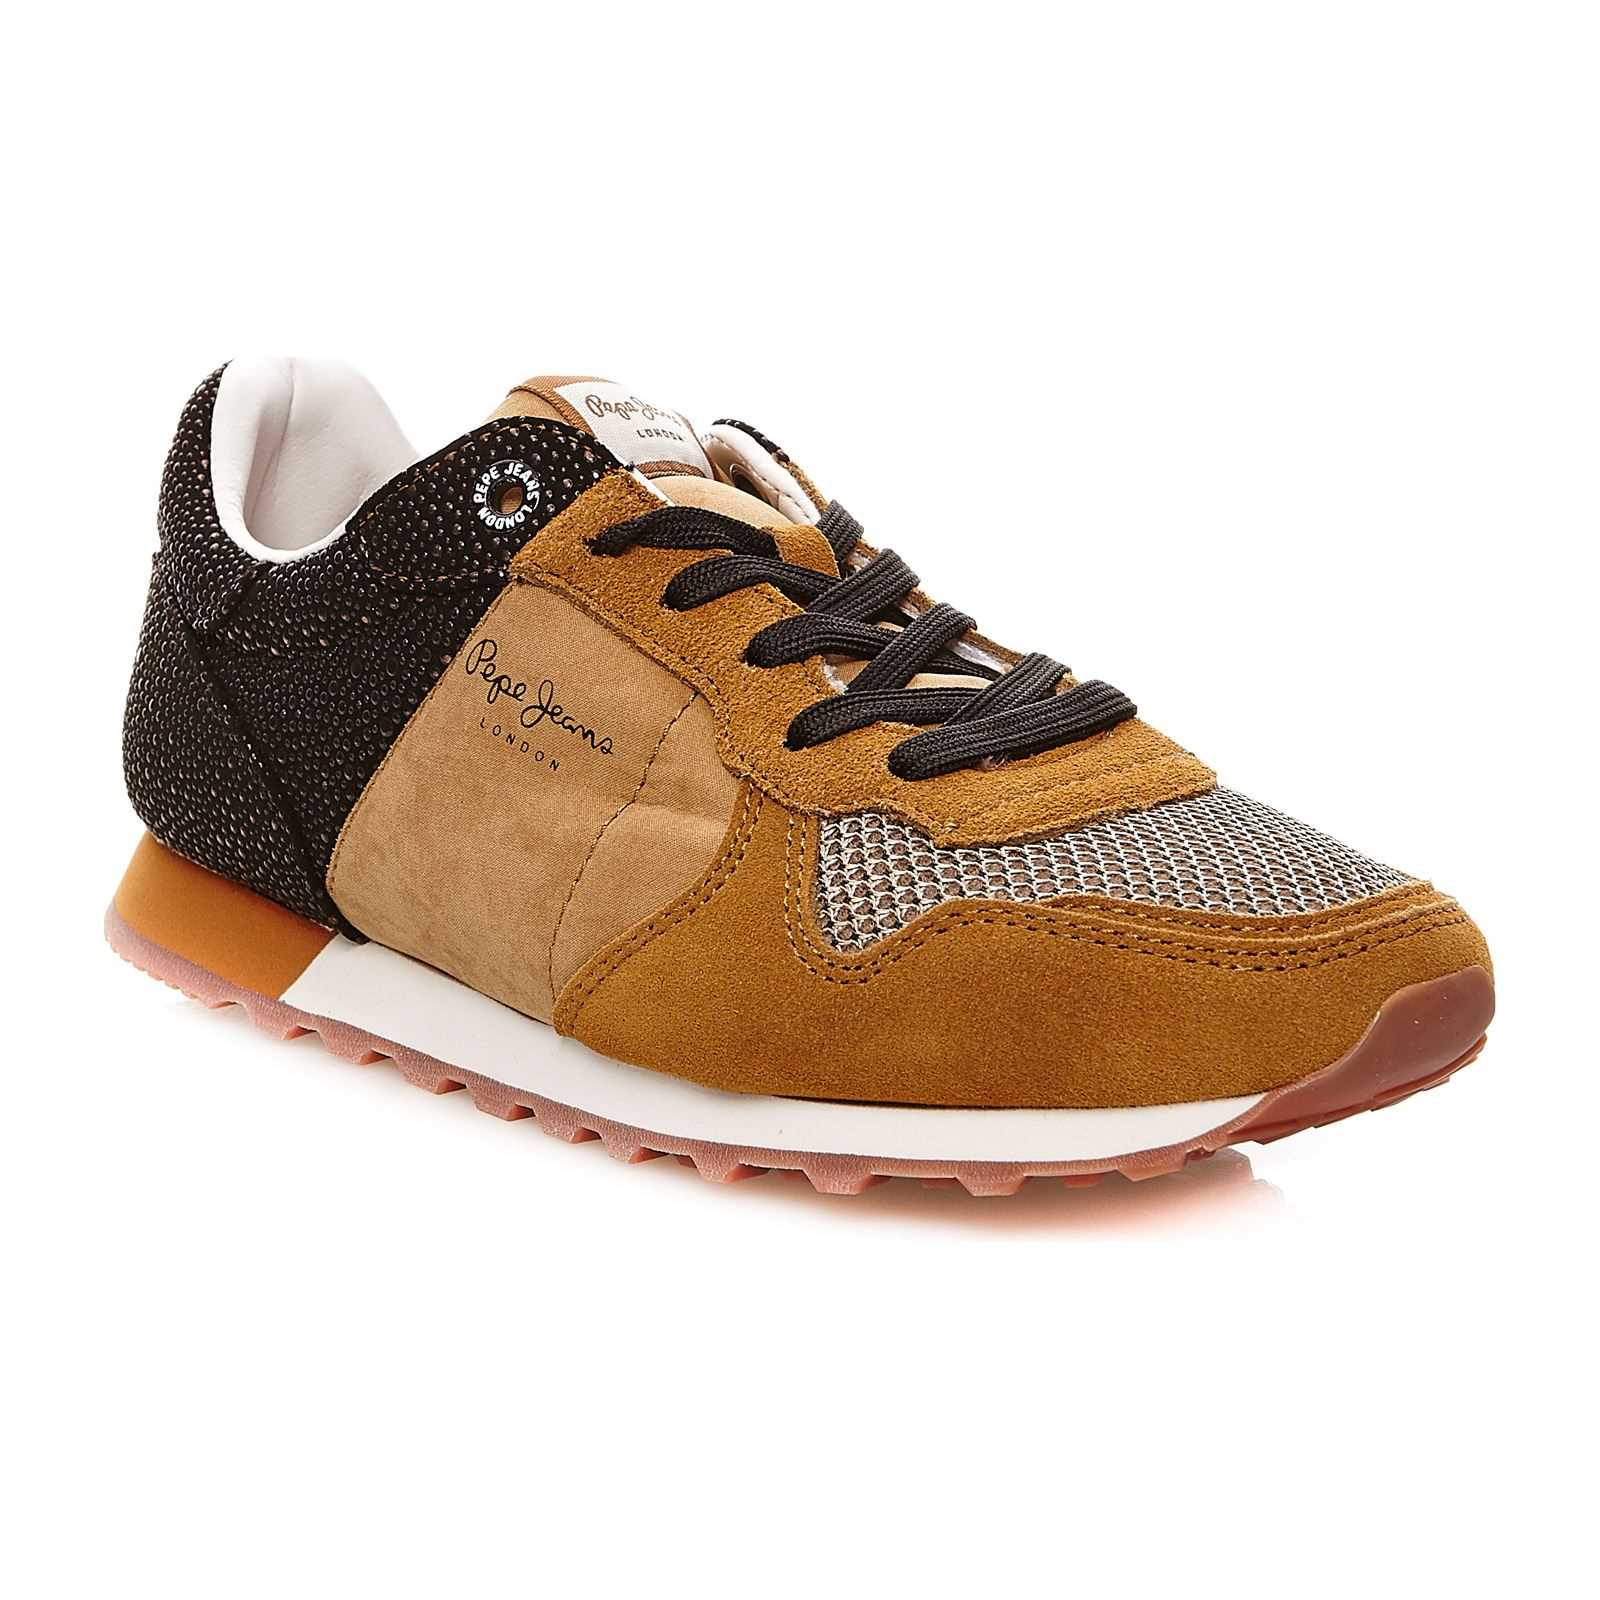 Pepe Jeans Footwear Verona W Flash - Sneakers - camel